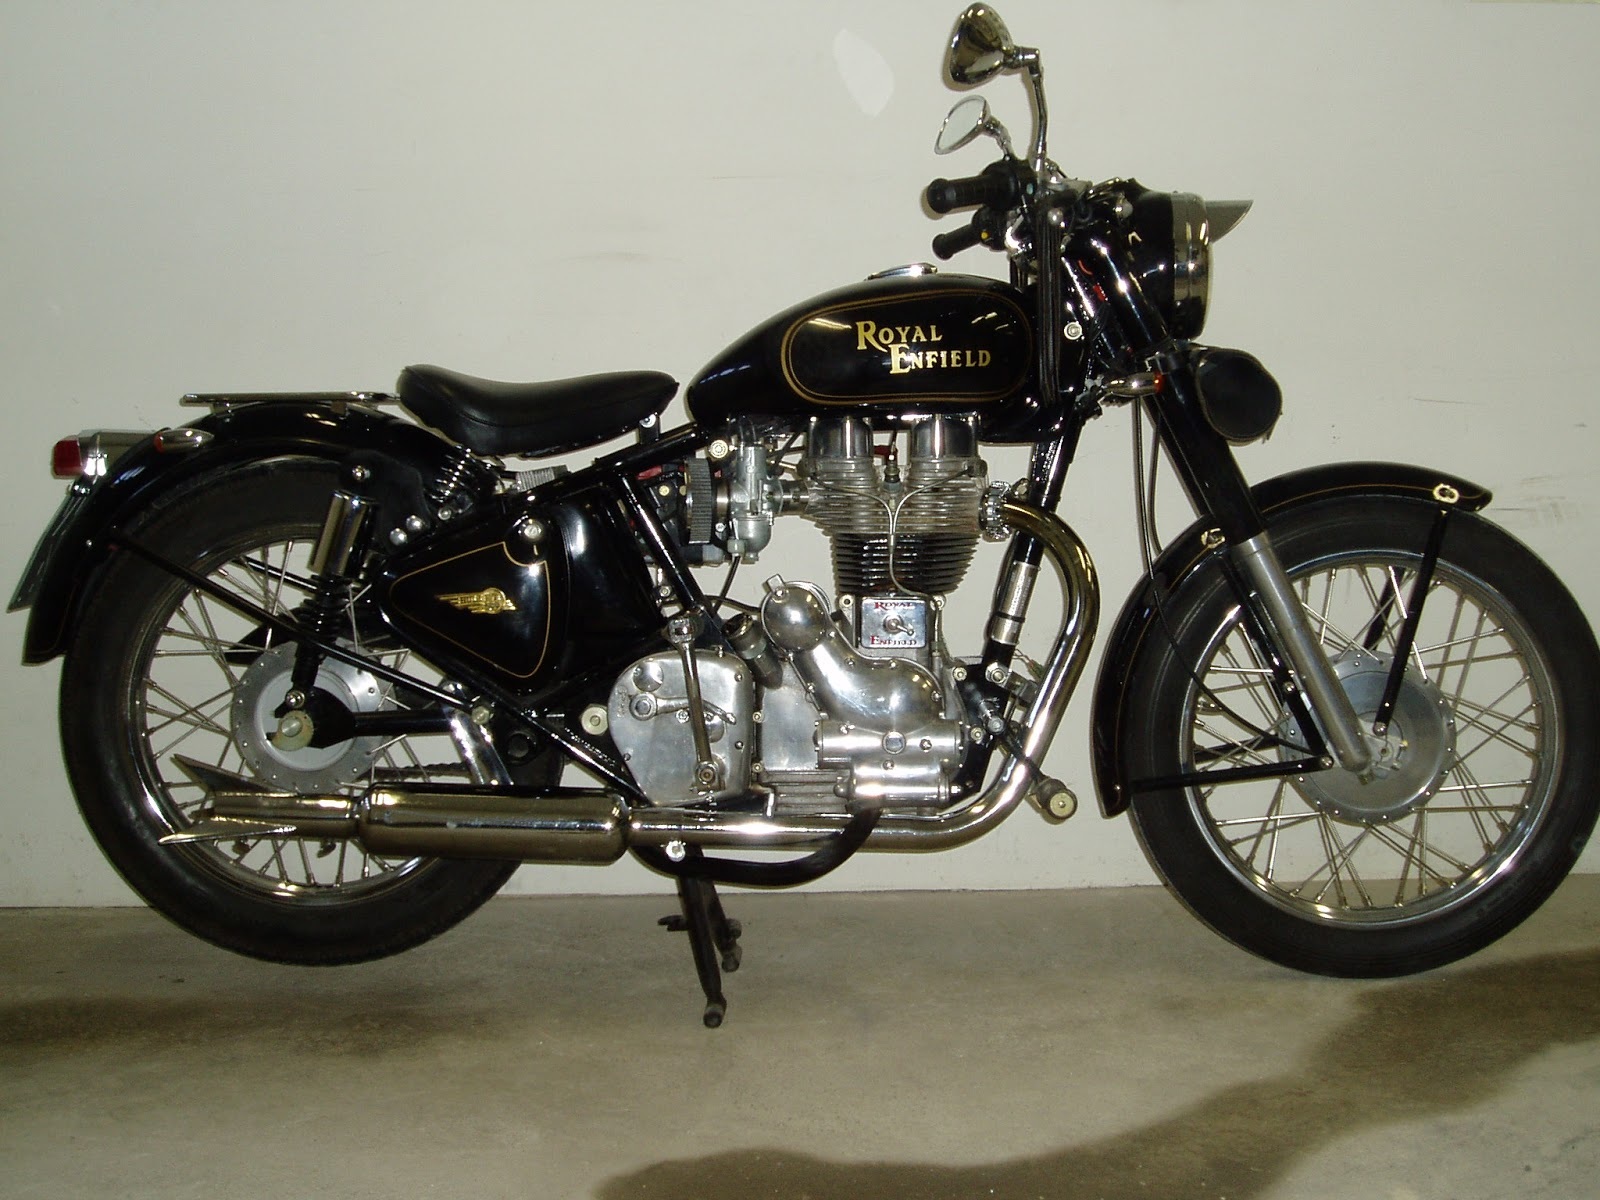 Bullet 350 Hd Wallpaper Online Wallpapers Shop Royal Enfield Bullet Motorcycle